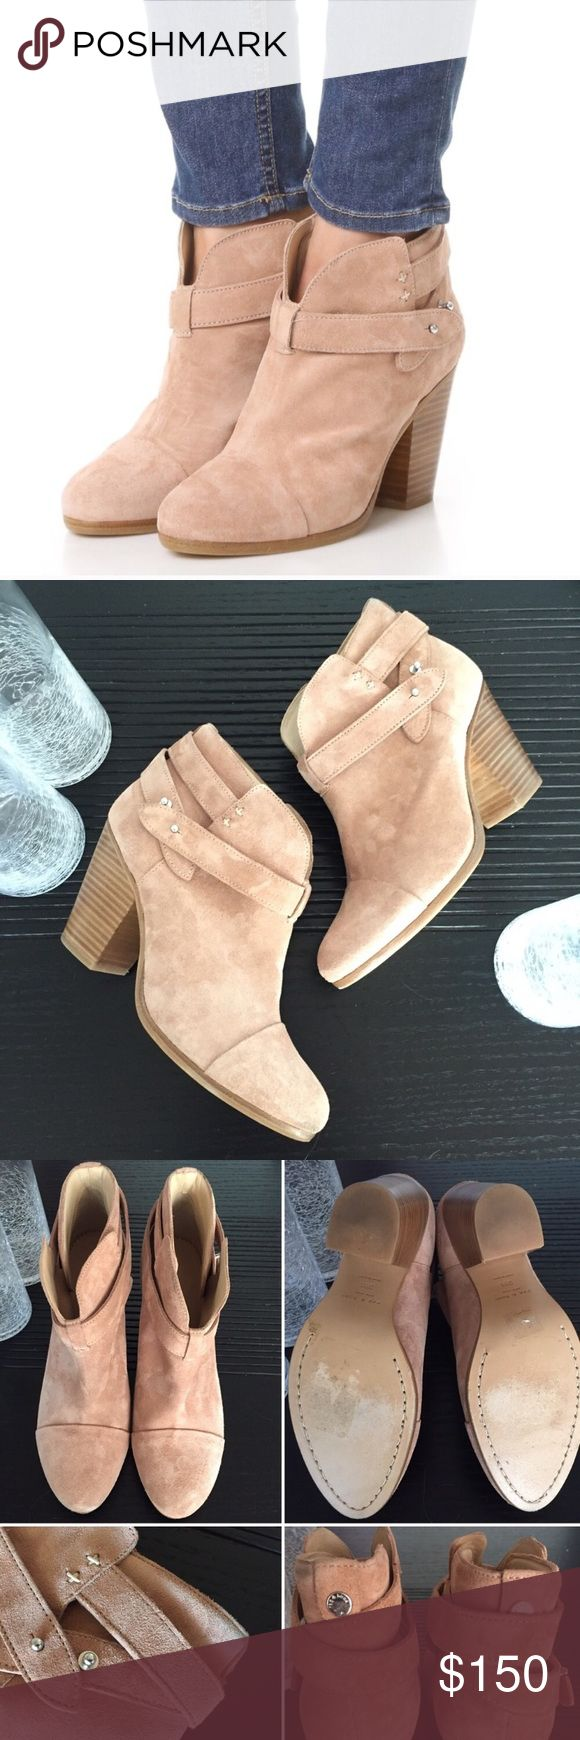 """Rag and Bone // """"Harrow""""Booties Give your black boots a break with these blush Harrow booties. Pushpin hardware modernizes a svelte cap-toe bootie girded with wraparound straps and set on a sculptural block heel. These have only been worn twice and are in amazing condition with just a tiny dark mark on the top of the shaft of the left shoe (shown in pic 3 bottom). Loved by celebrities and bloggers alike, these boots go with everything. Runs small.  3"""" heel with 4"""" boot shaft. Adjustable…"""